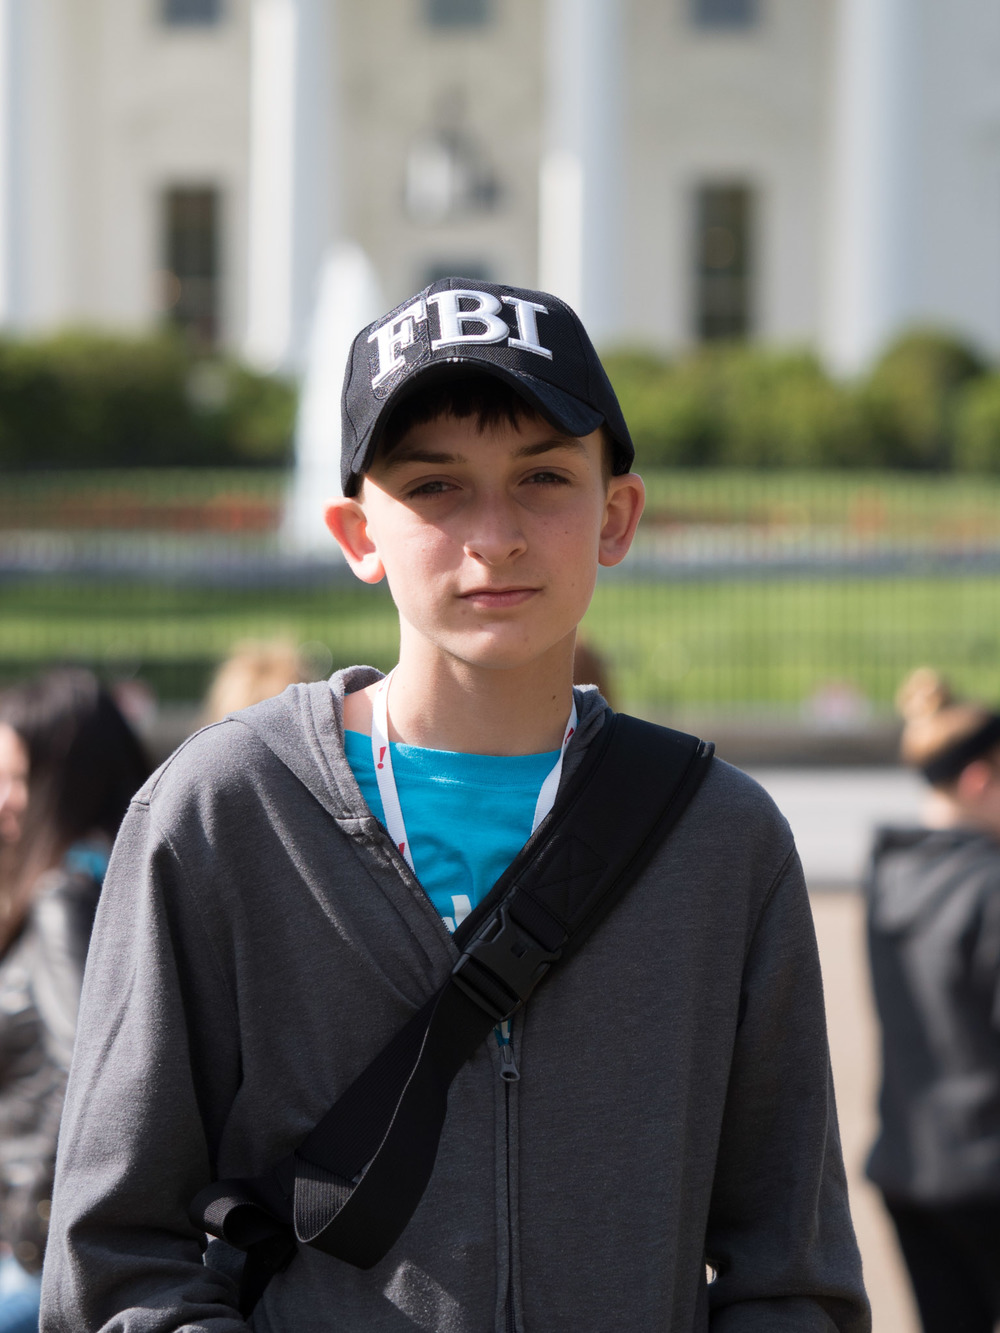 Another big highlight was being able to go to Washington D.C. with my oldest son Mason. I loved being able to spend that time with him. I am not sure if he will even know how much it meant to me, but I am sure those of you who are parents that read this will understand.